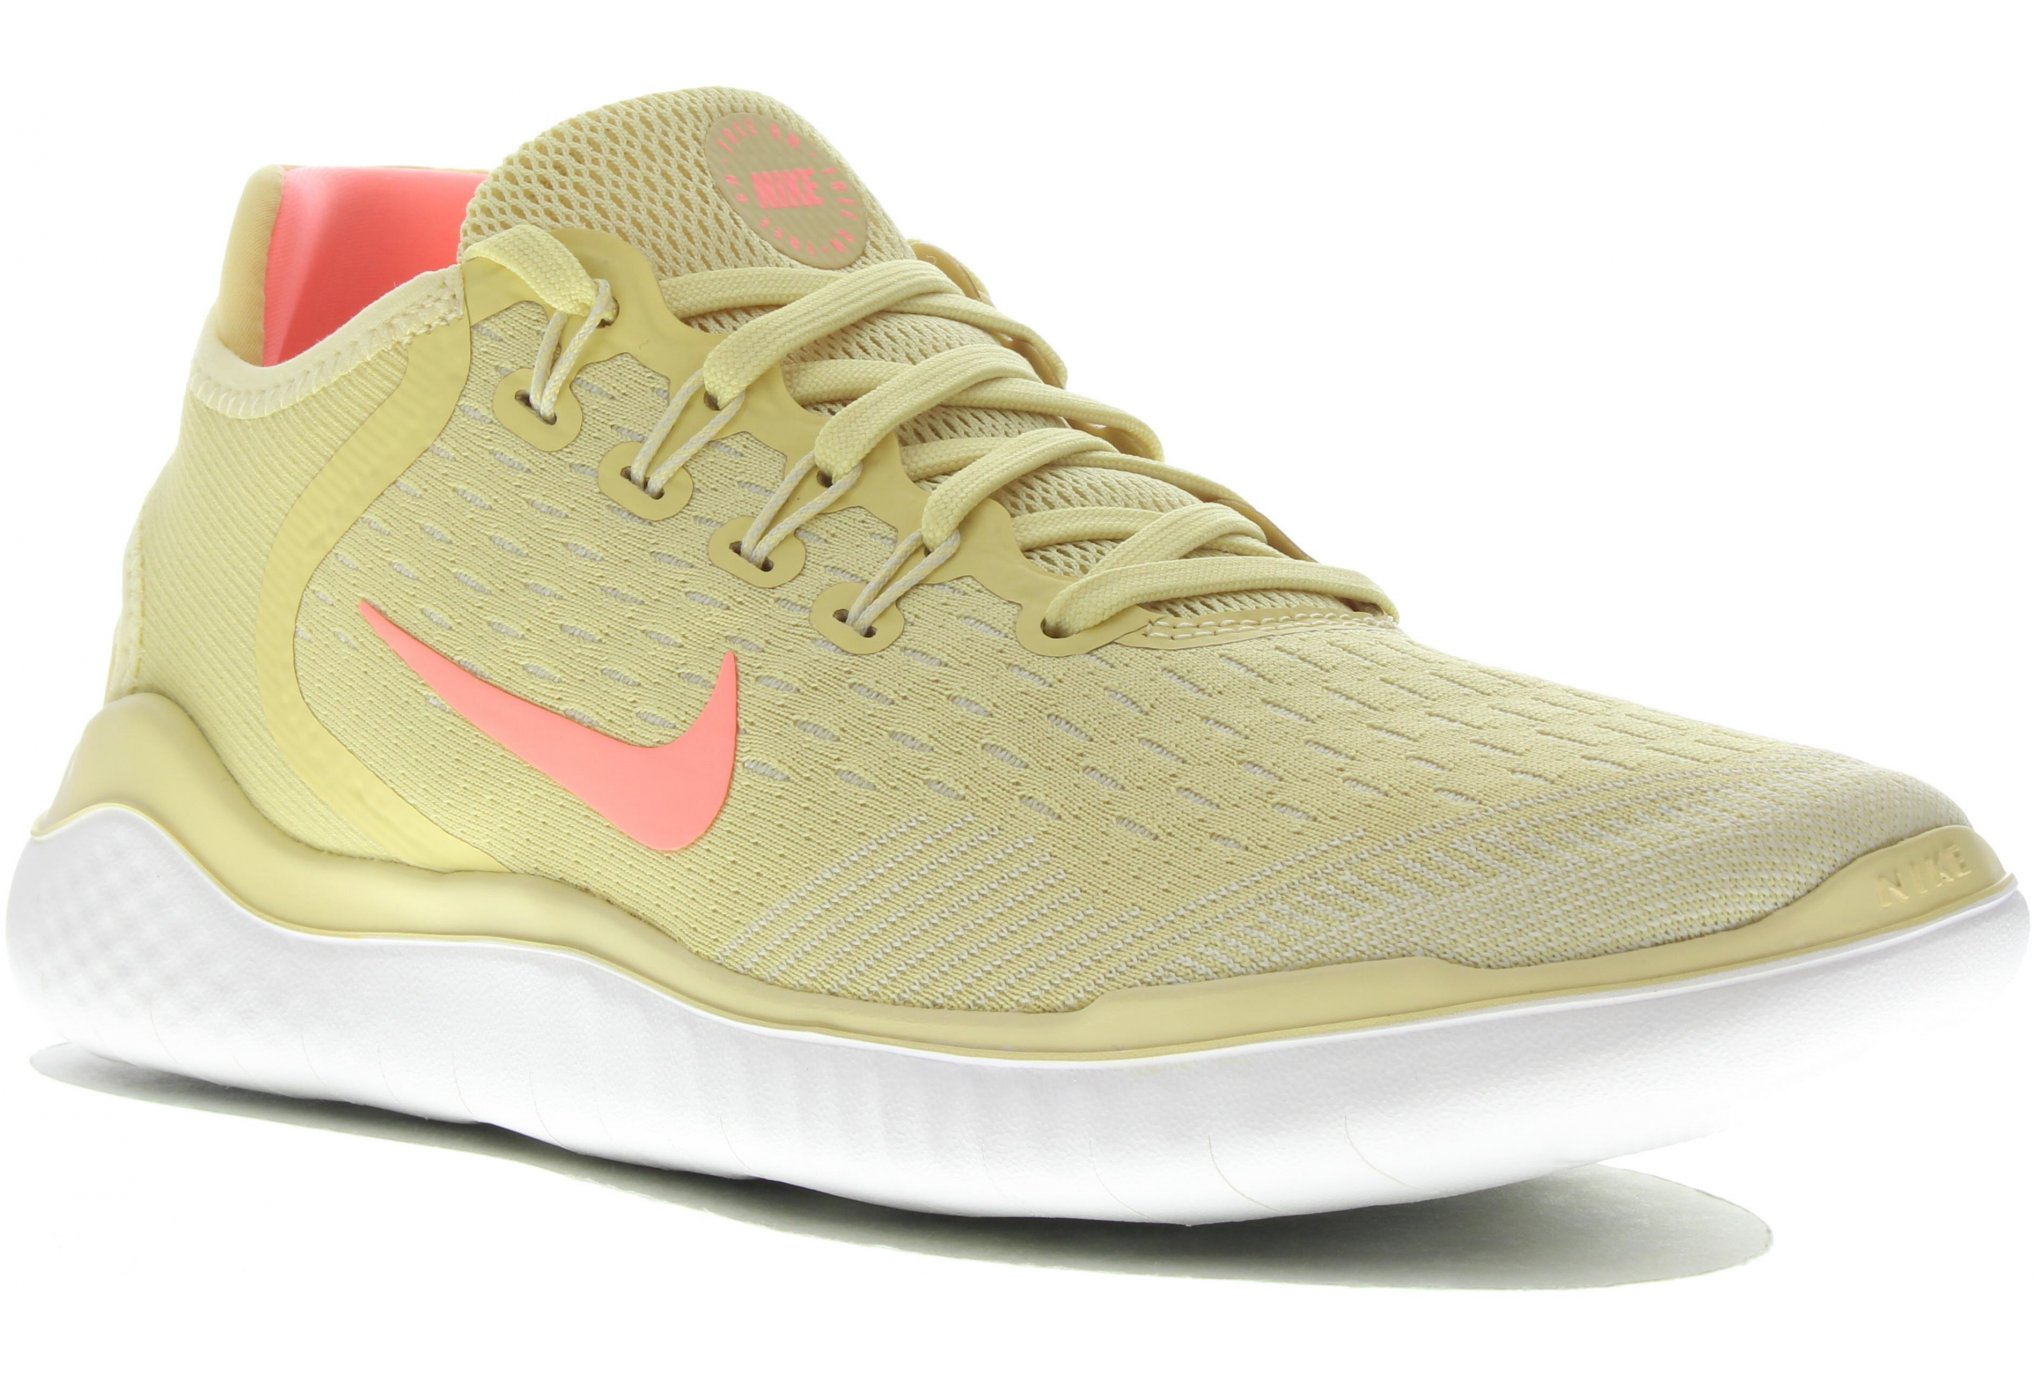 Trail Nike W Rn Femme Session Free 2018 Chaussures Running Summer SUzqVpM